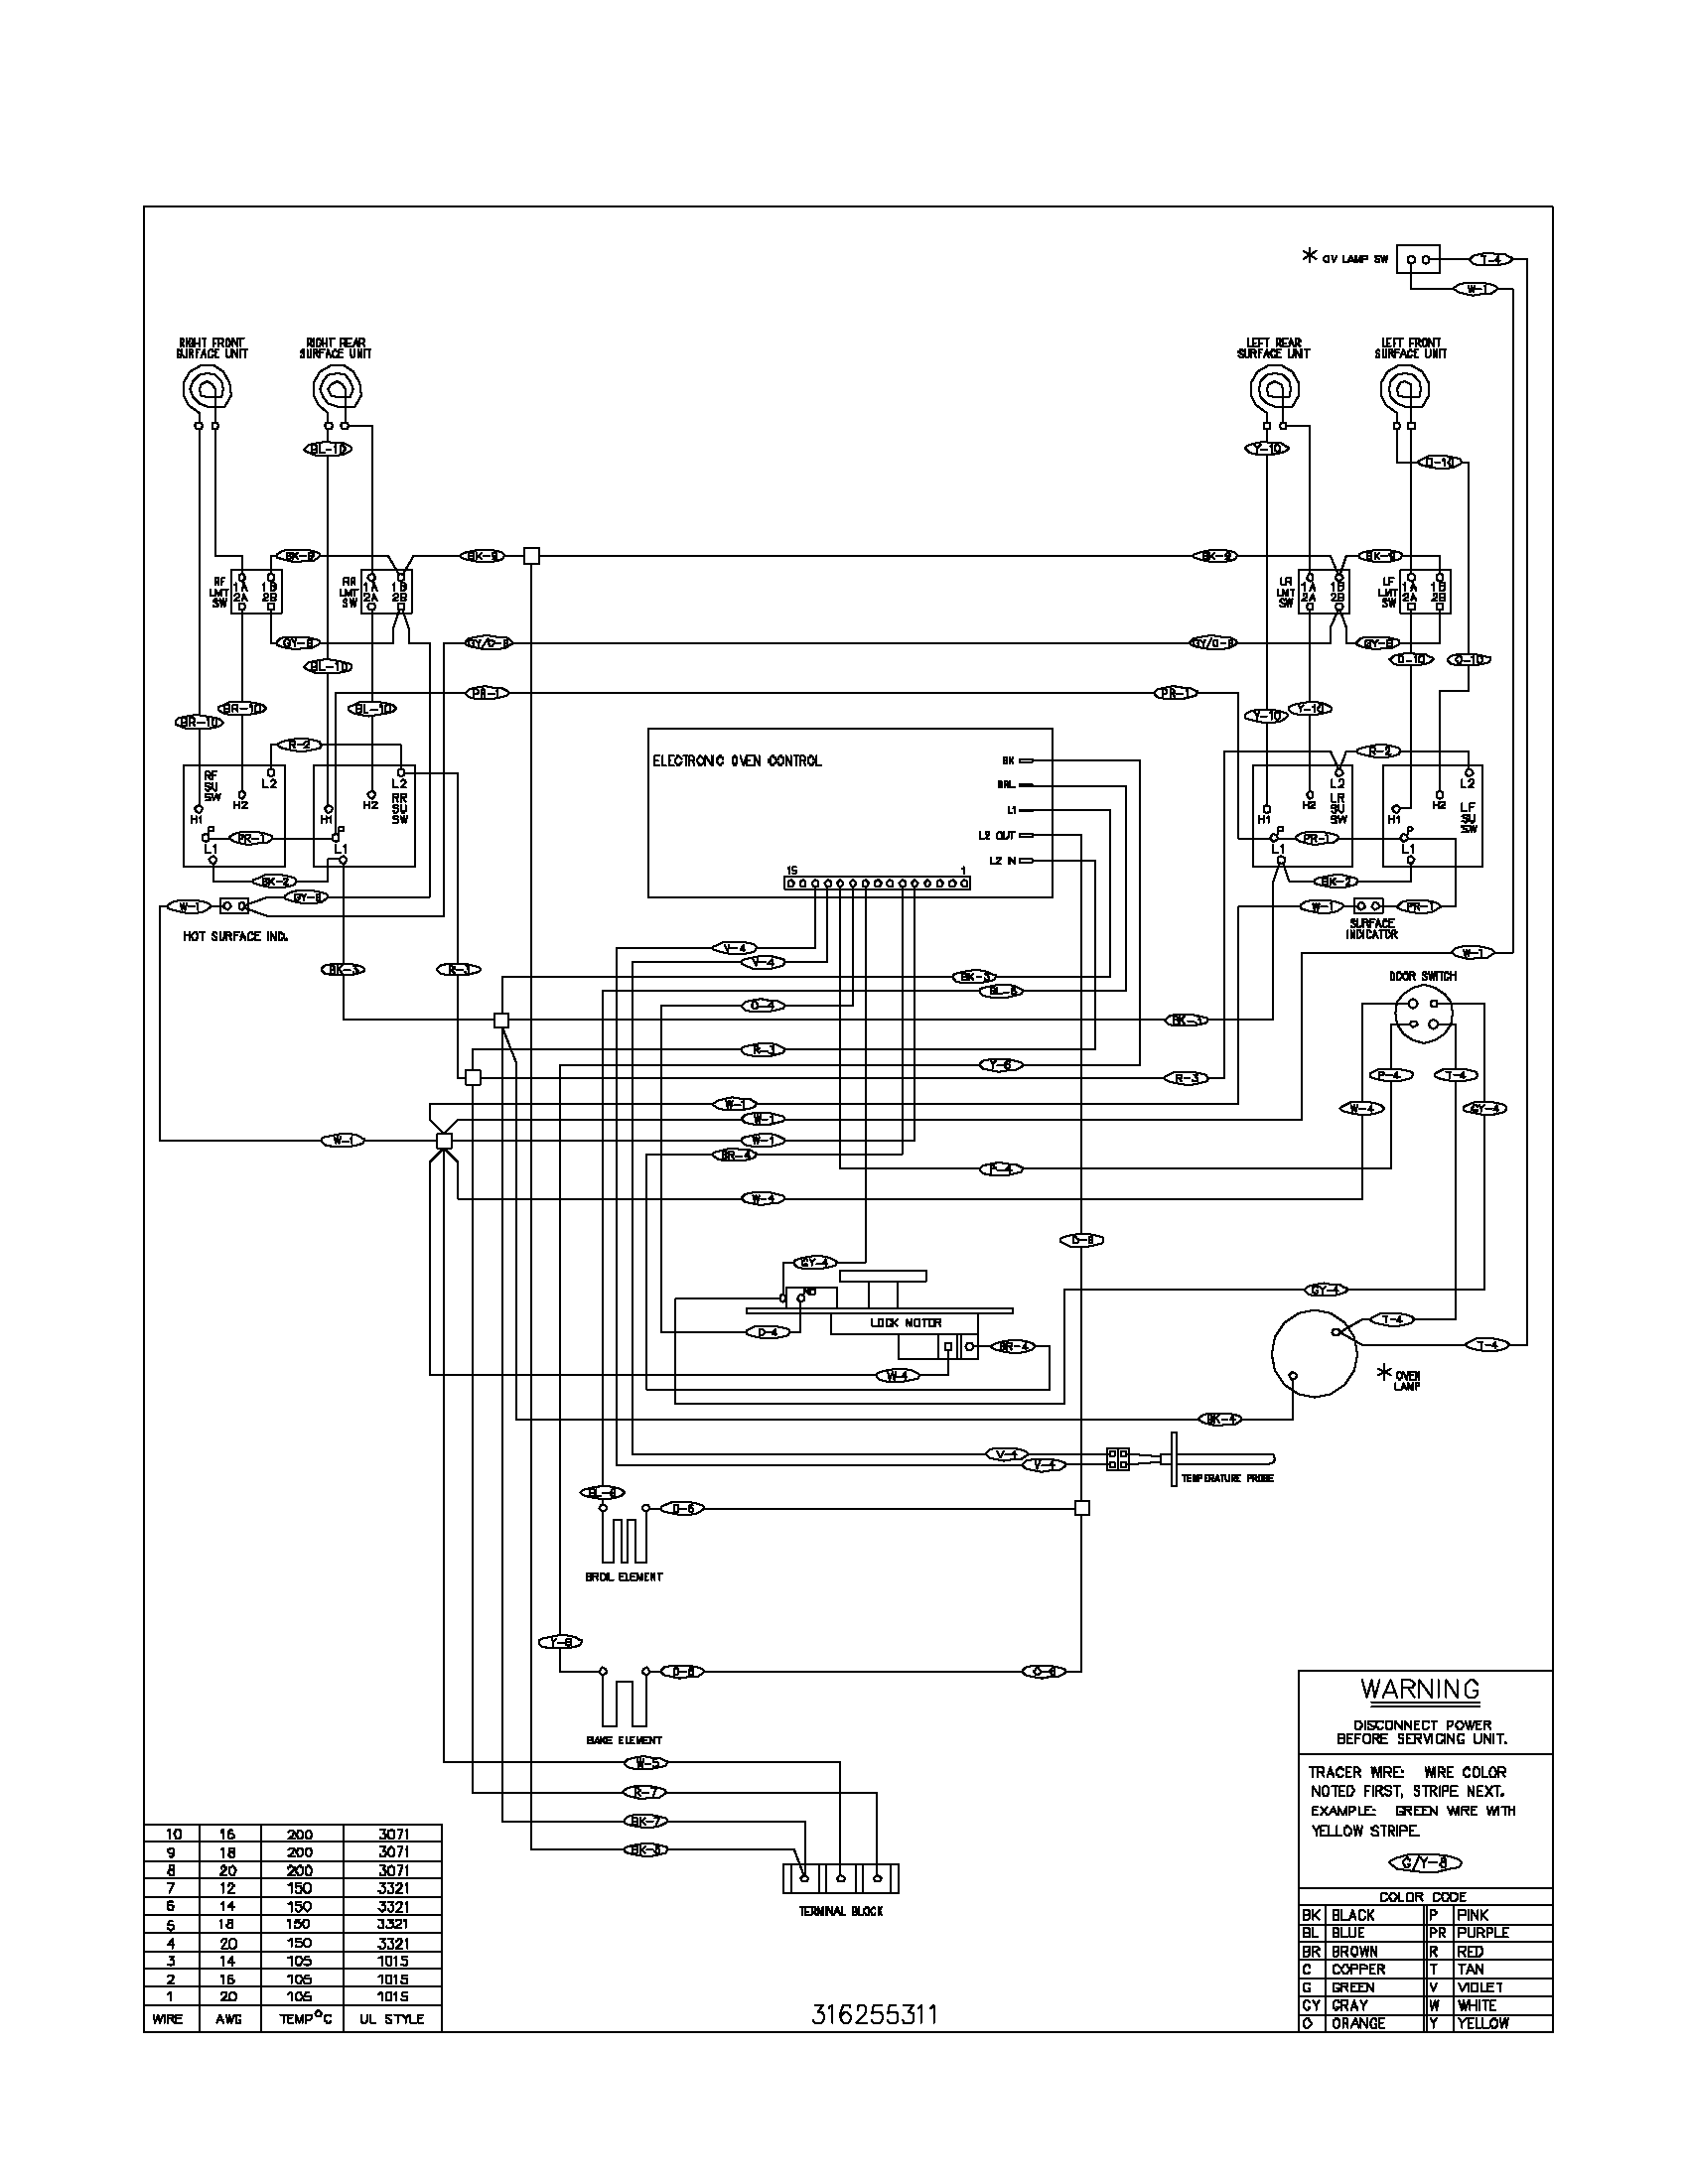 double wall switch wiring diagram with Appliance on 7x2xb Maytag Dryer 240v Plug Don T Outlet further Appliance further Whirlpool Self Cleaning Oven Wiring Diagram besides Buck Stove Repairs as well Wiring electric baseboard heaters thermostat.